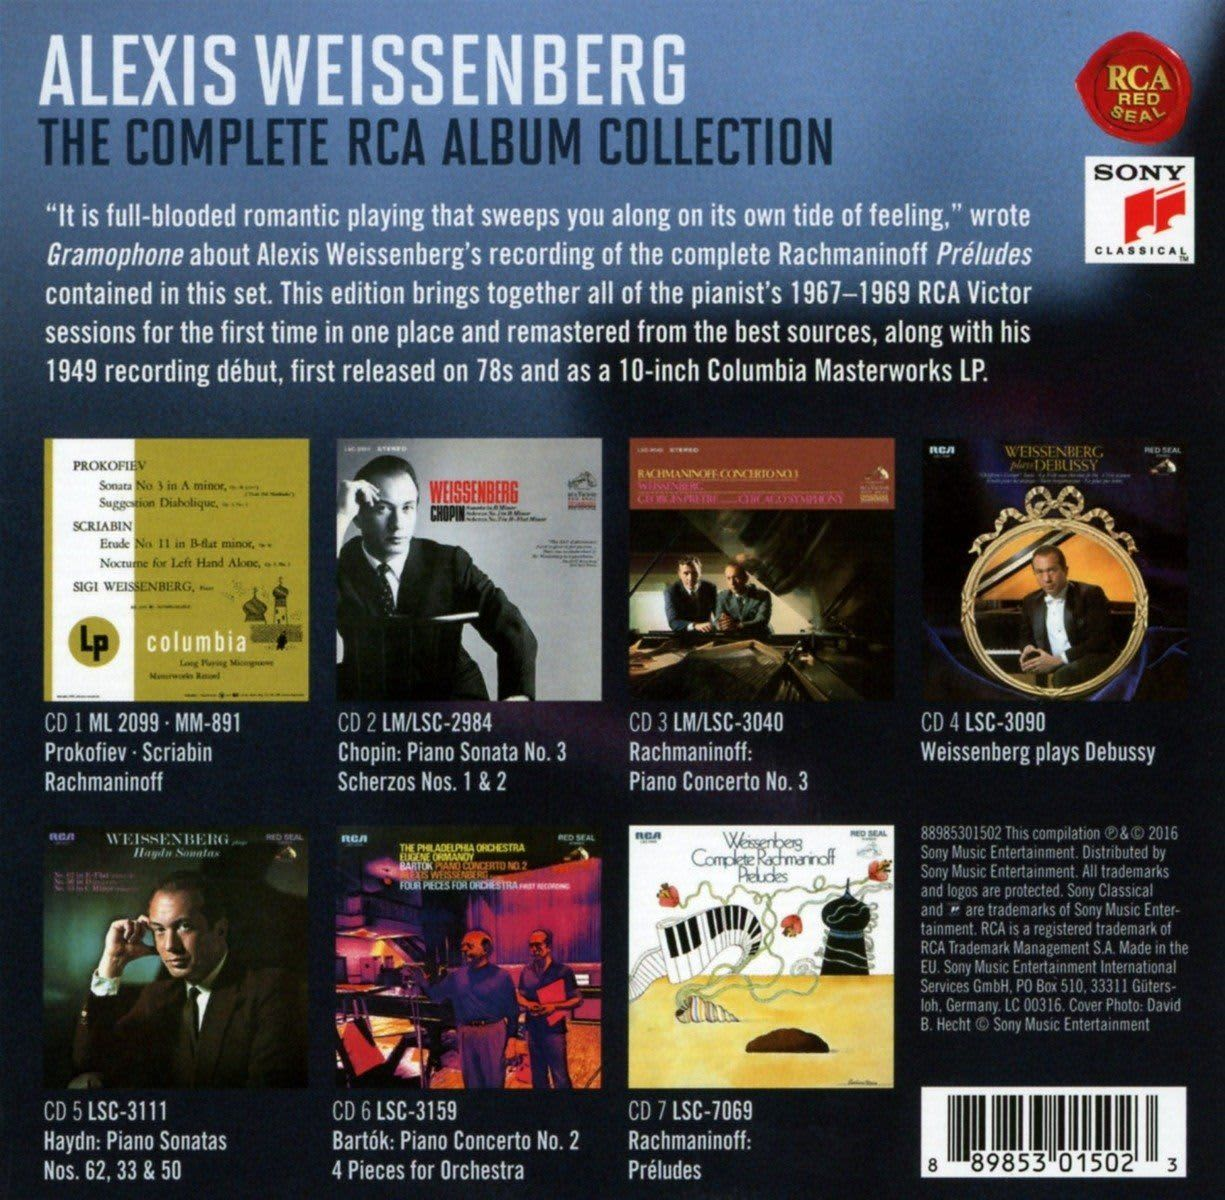 Photo No.2 of Alexis Weissenberg: The Complete RCA Album Collection